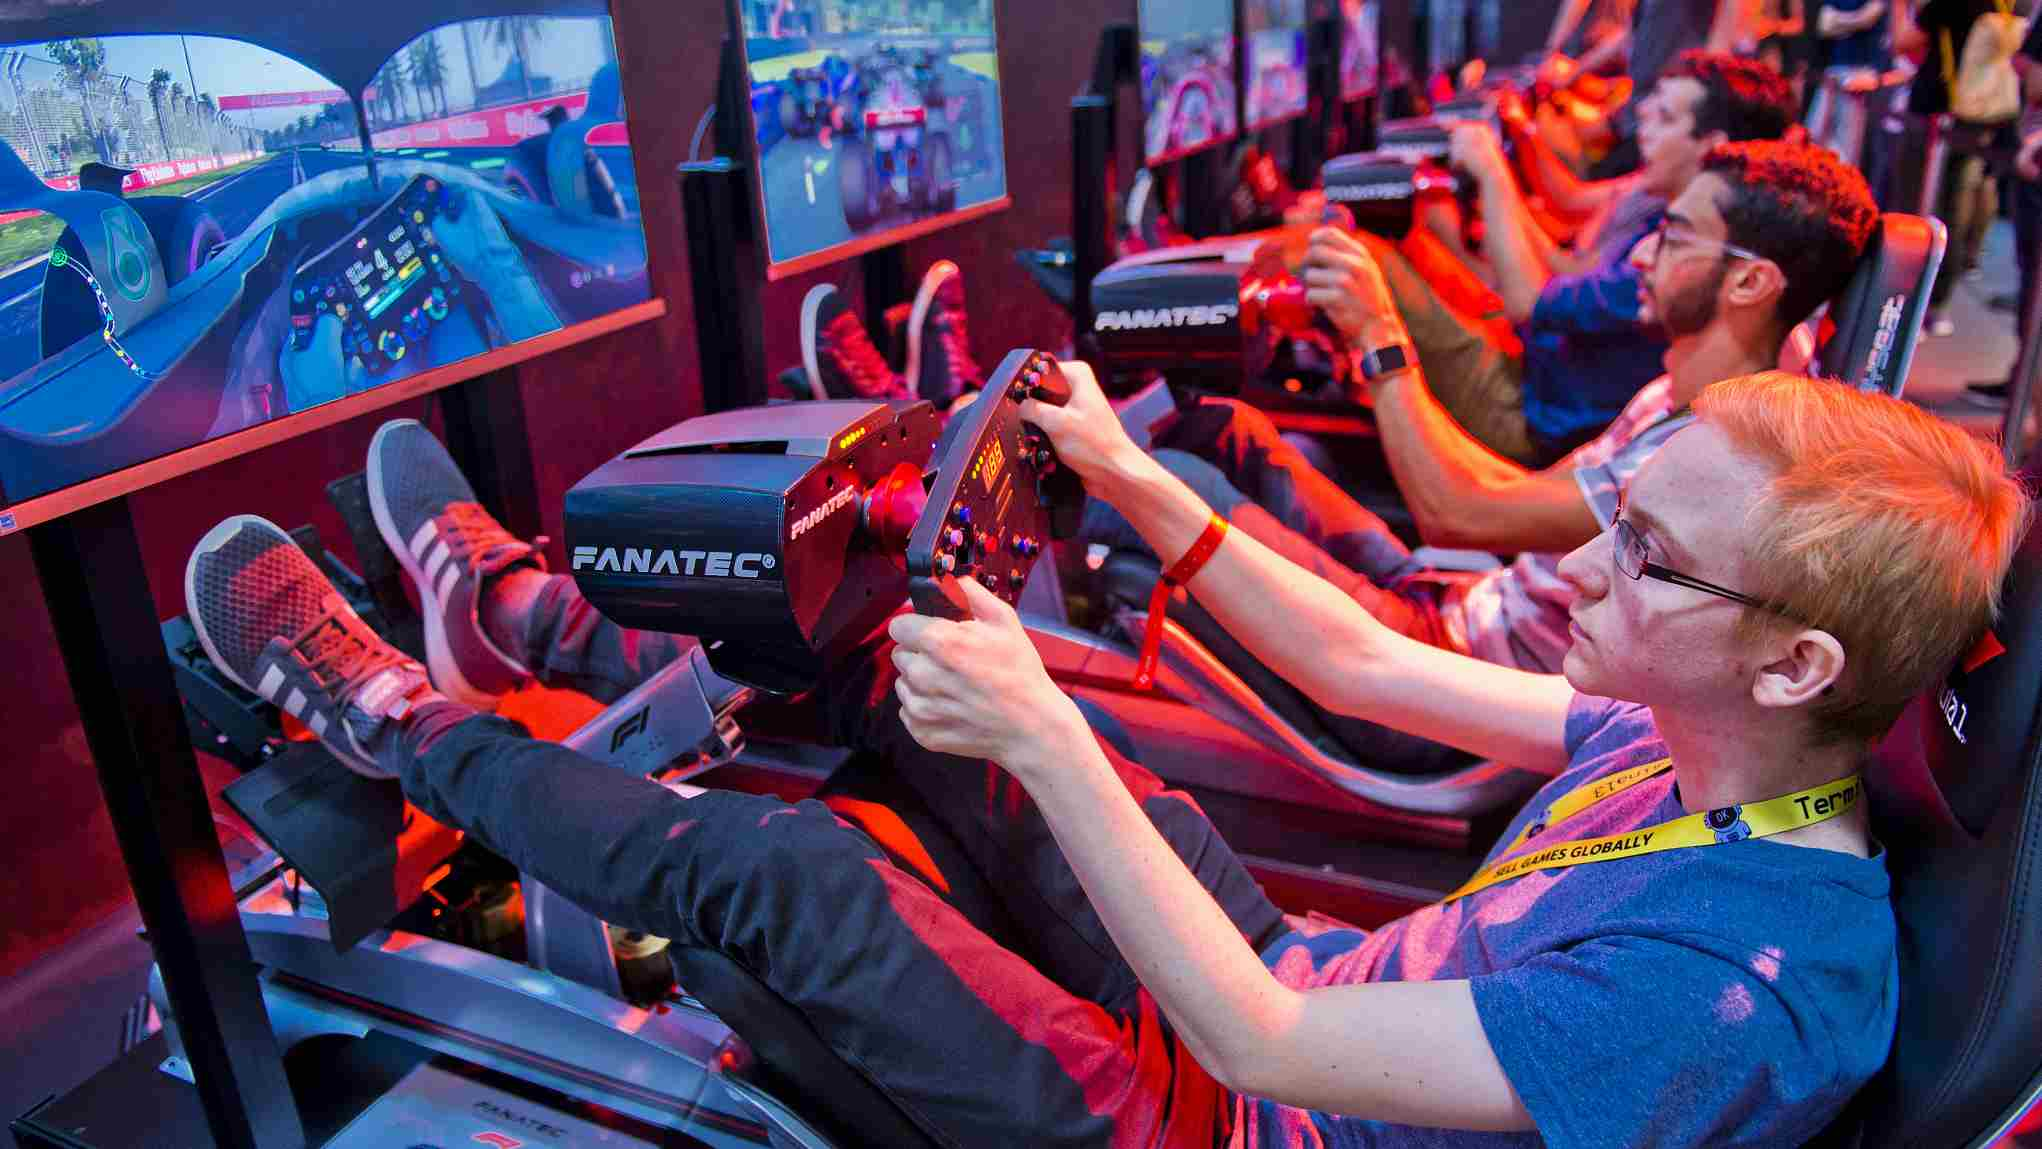 F1 sees esports as an Olympic opportunity